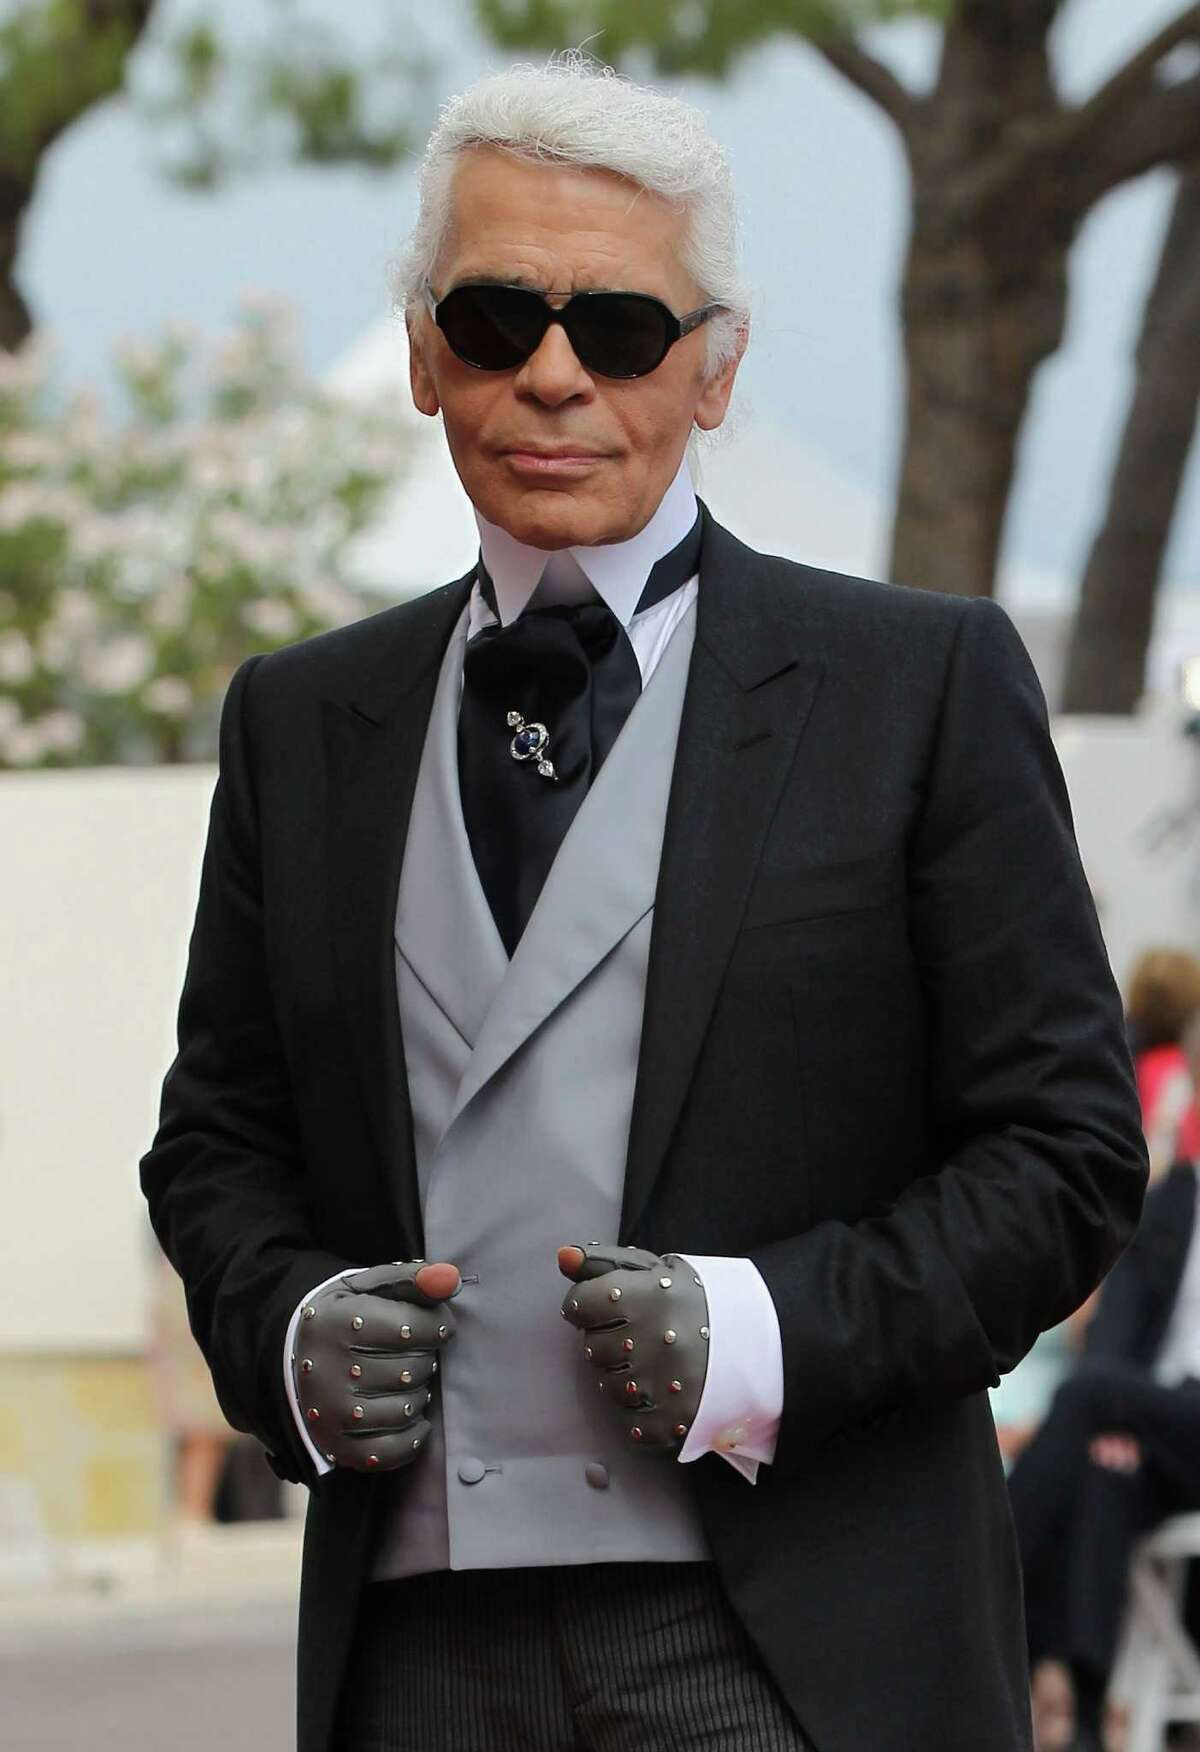 MONACO - JULY 02: Karl Lagerfeld attends the religious ceremony of the Royal Wedding of Prince Albert II of Monaco to Princess Charlene of Monaco in the main courtyard at the Prince's Palace on July 2, 2011 in Monaco. The Roman-Catholic ceremony follows the civil wedding which was held in the Throne Room of the Prince's Palace of Monaco on July 1. With her marriage to the head of state of the Principality of Monaco, Charlene Wittstock has become Princess consort of Monaco and gains the title, Princess Charlene of Monaco. Celebrations including concerts and firework displays are being held across several days, attended by a guest list of global celebrities and heads of state. (Photo by Sean Gallup/Getty Images)